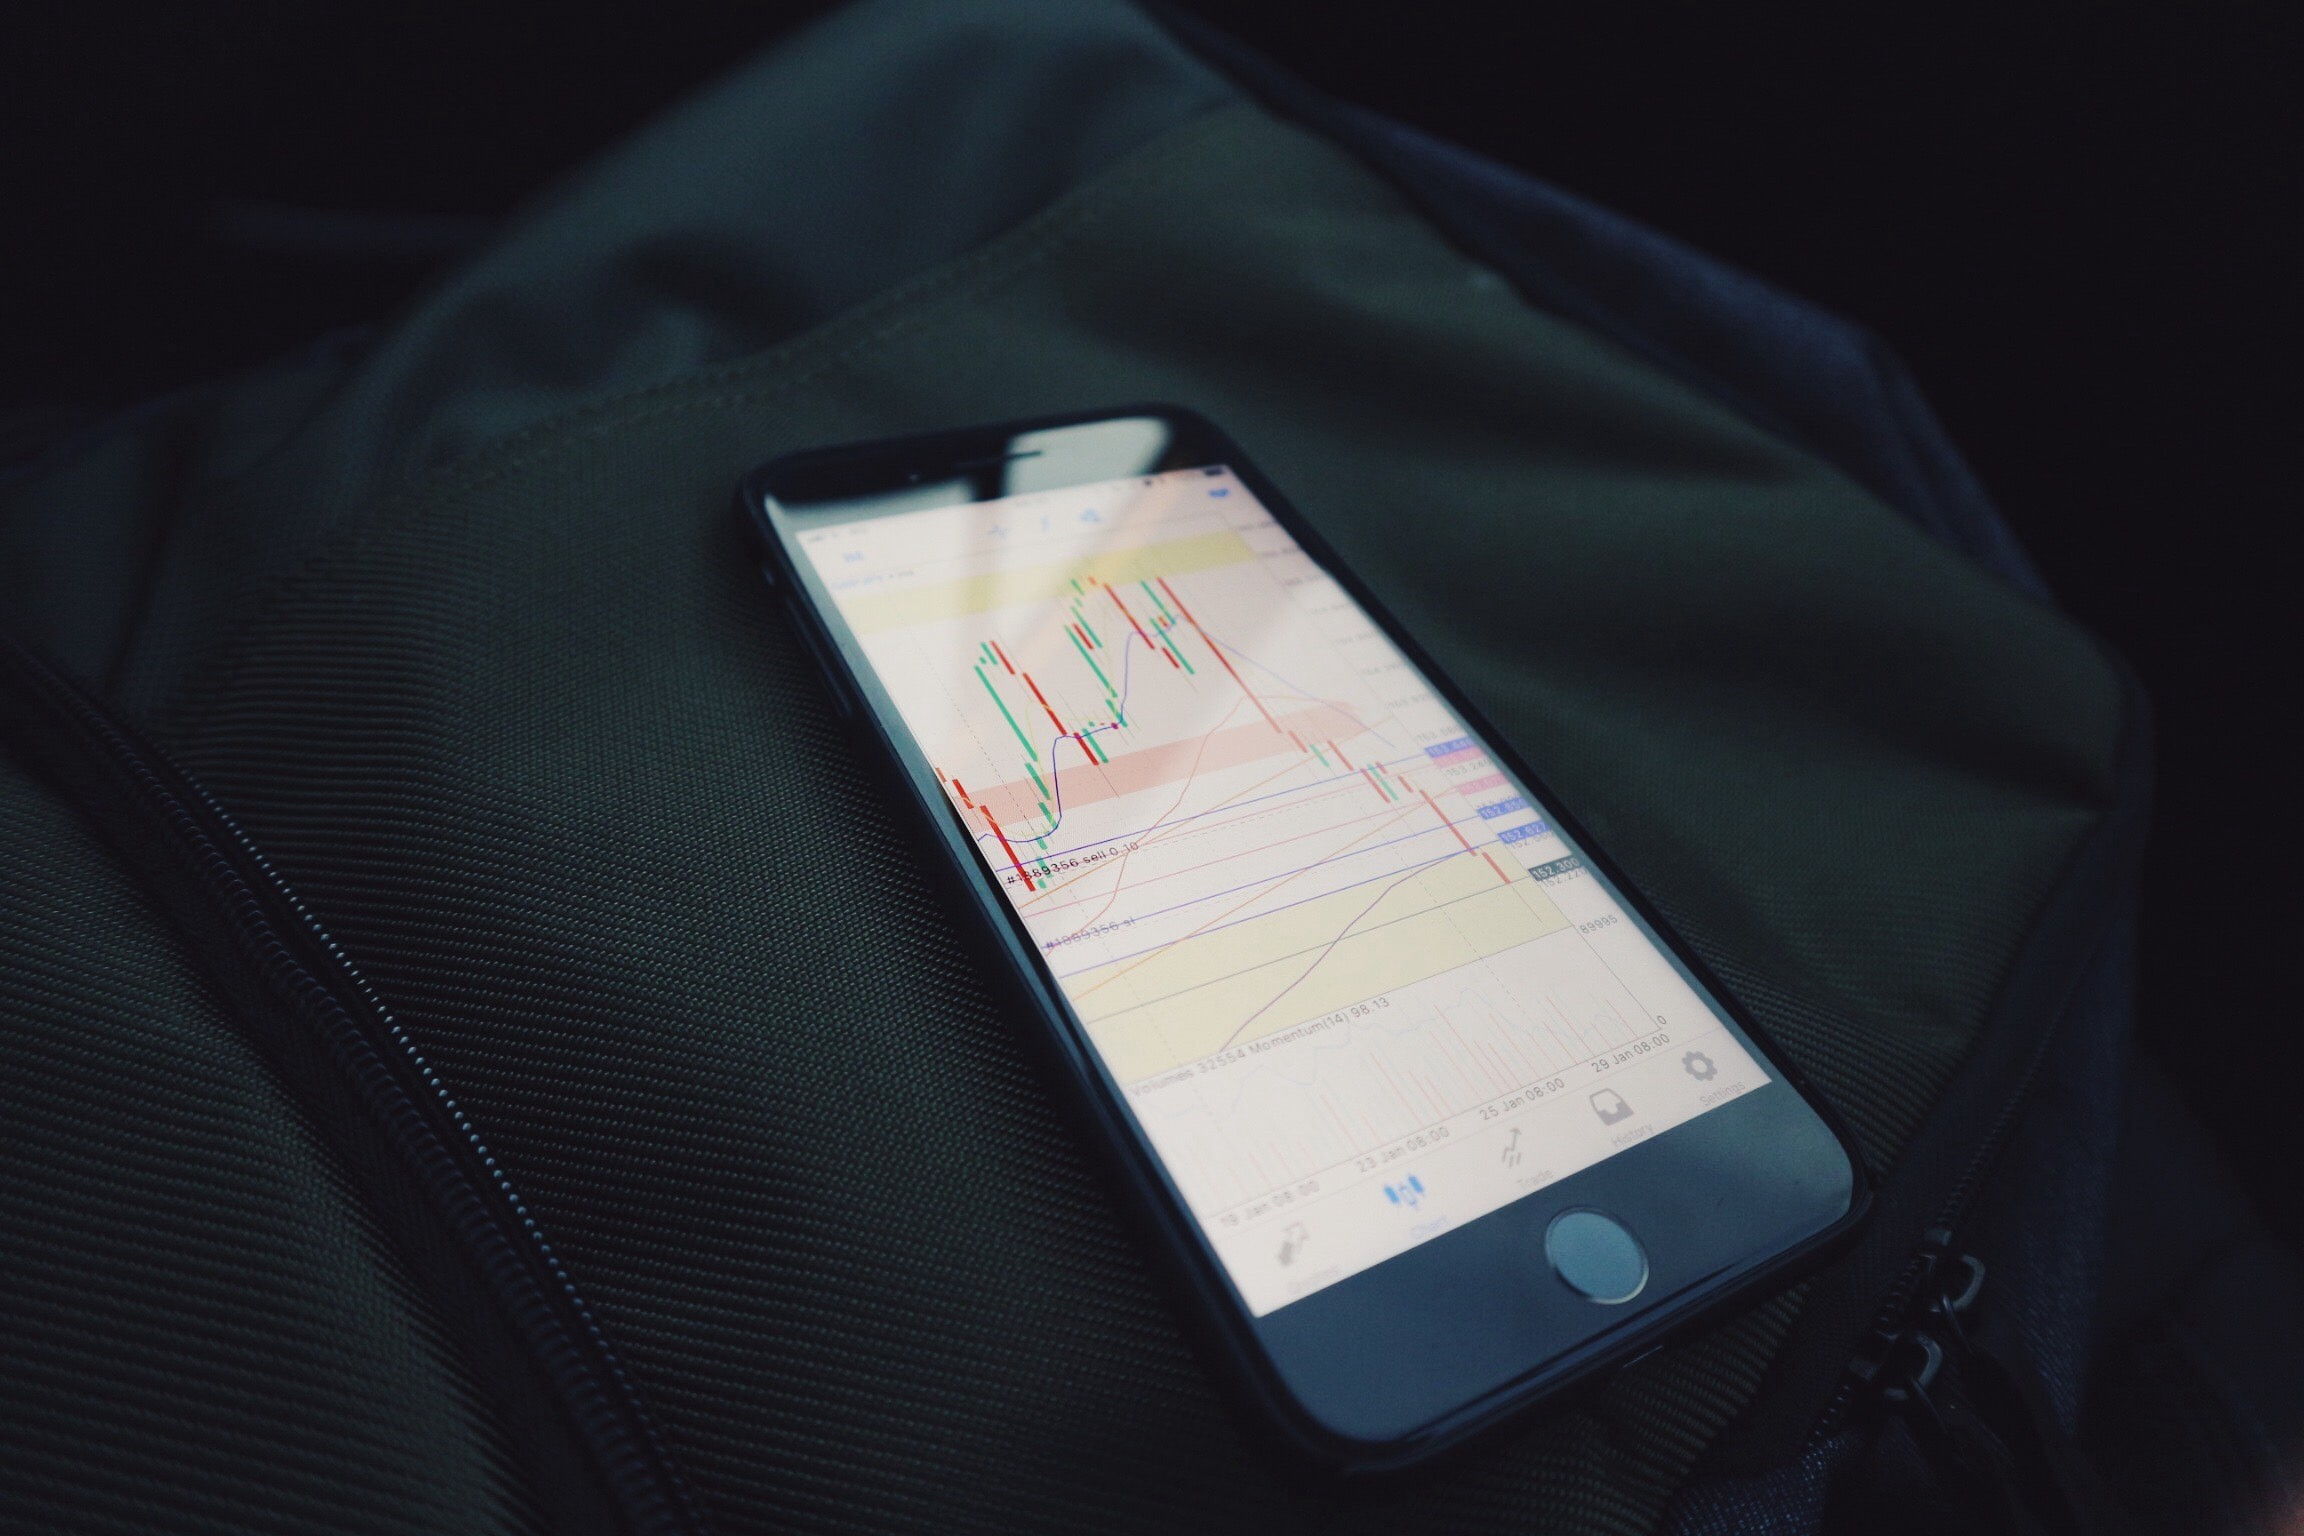 Free stock trading app for mobile phone